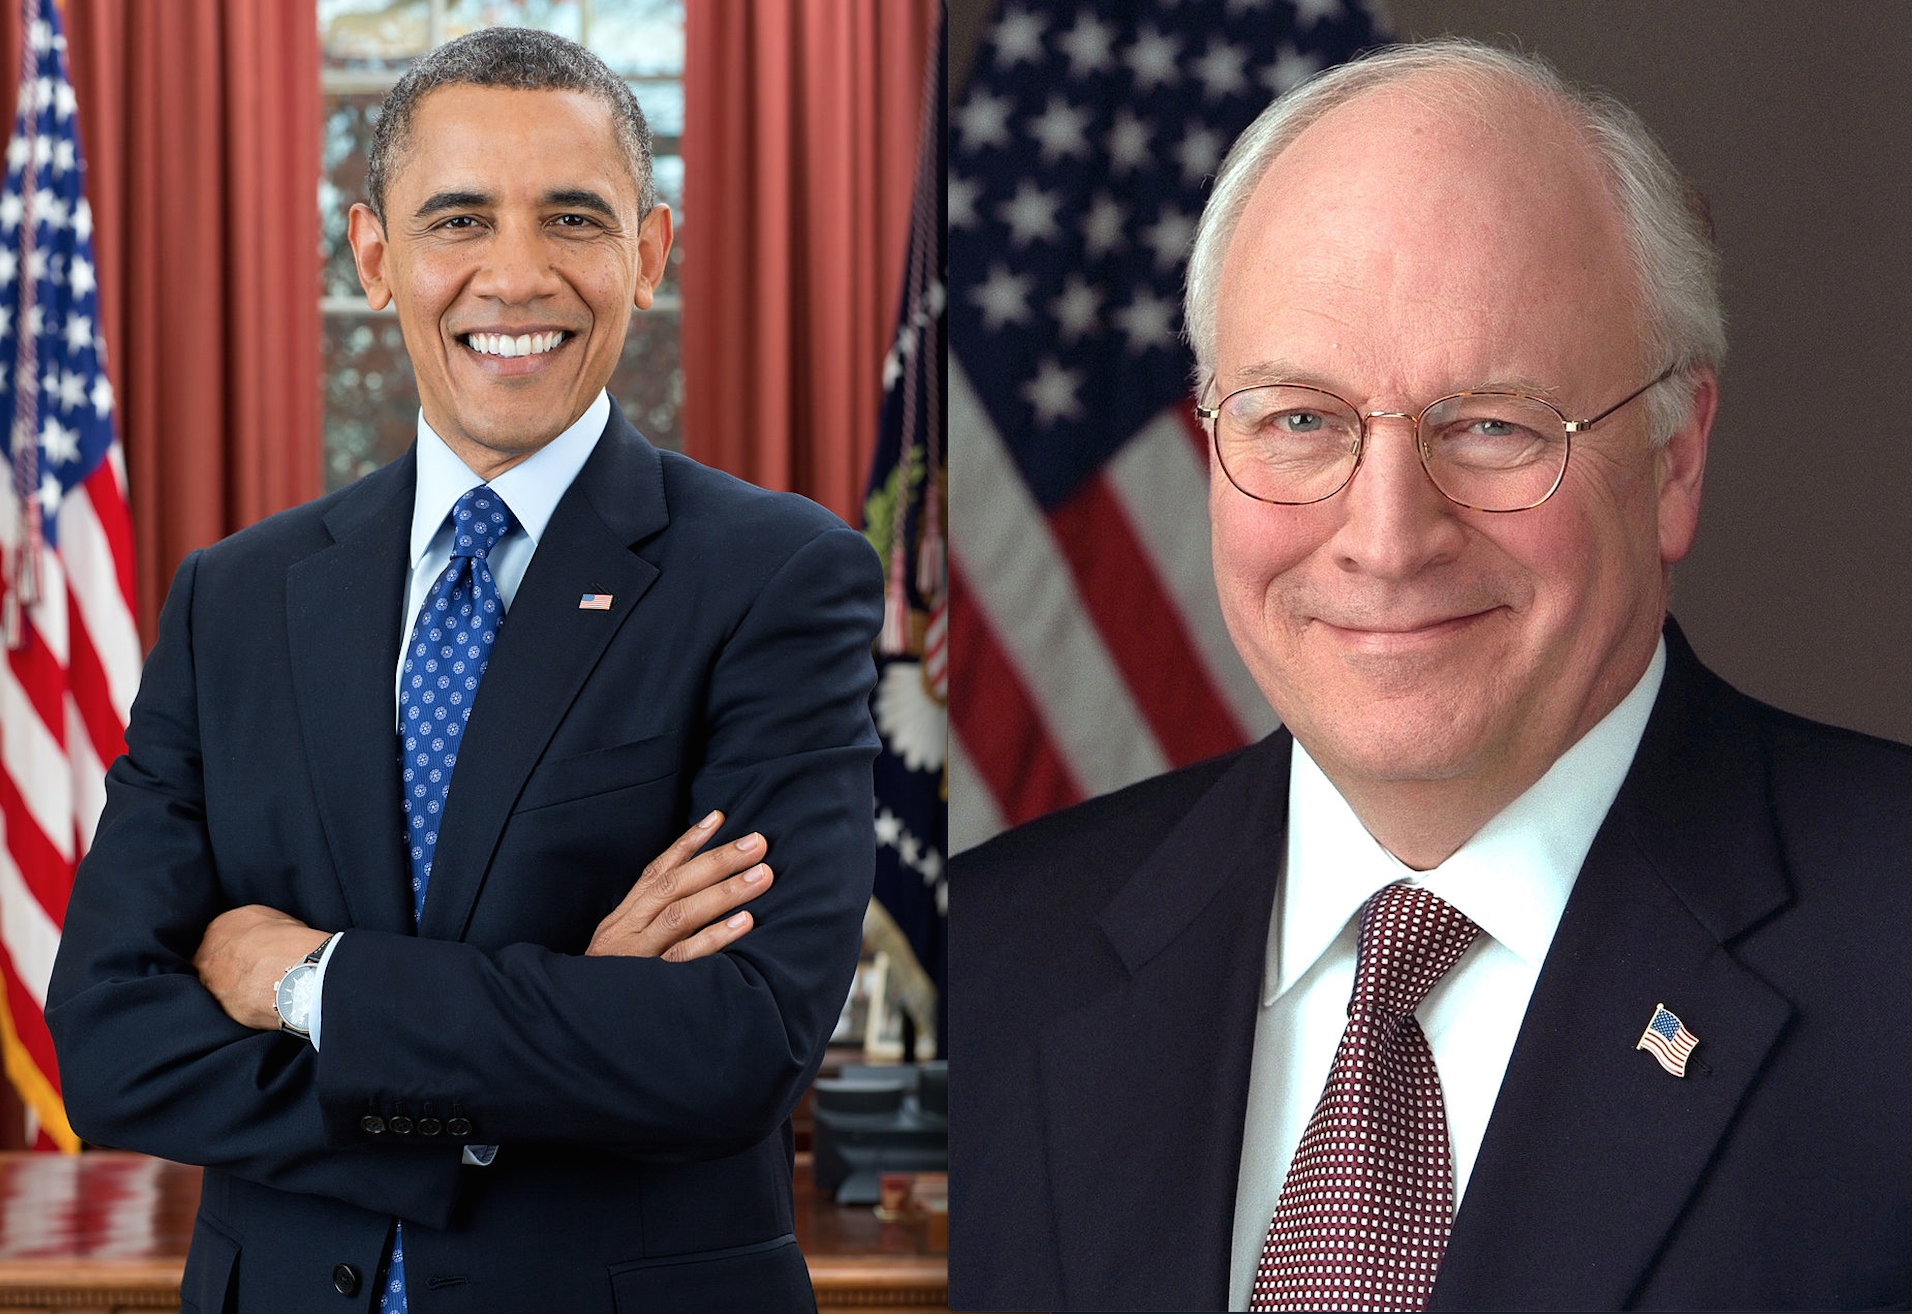 Barack Obama, Dick Cheney, and Me: We're All Related